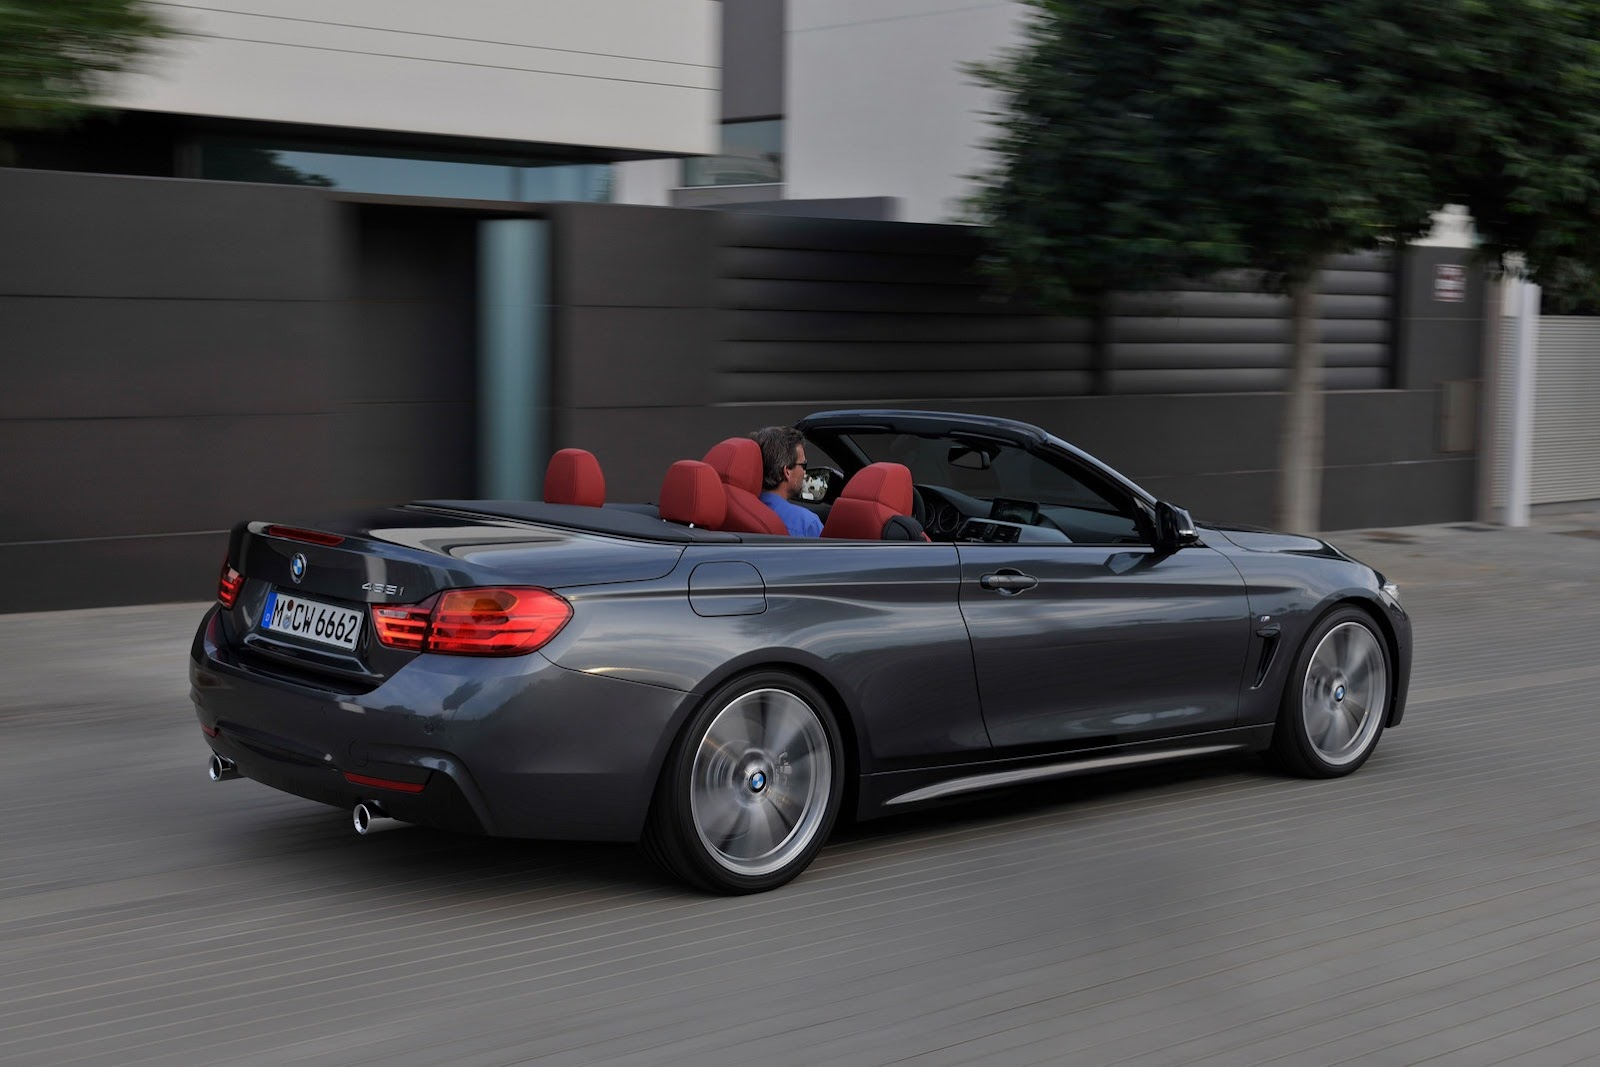 2013 bmw s rie 4 coup cabriolet f32 3 page 20. Black Bedroom Furniture Sets. Home Design Ideas